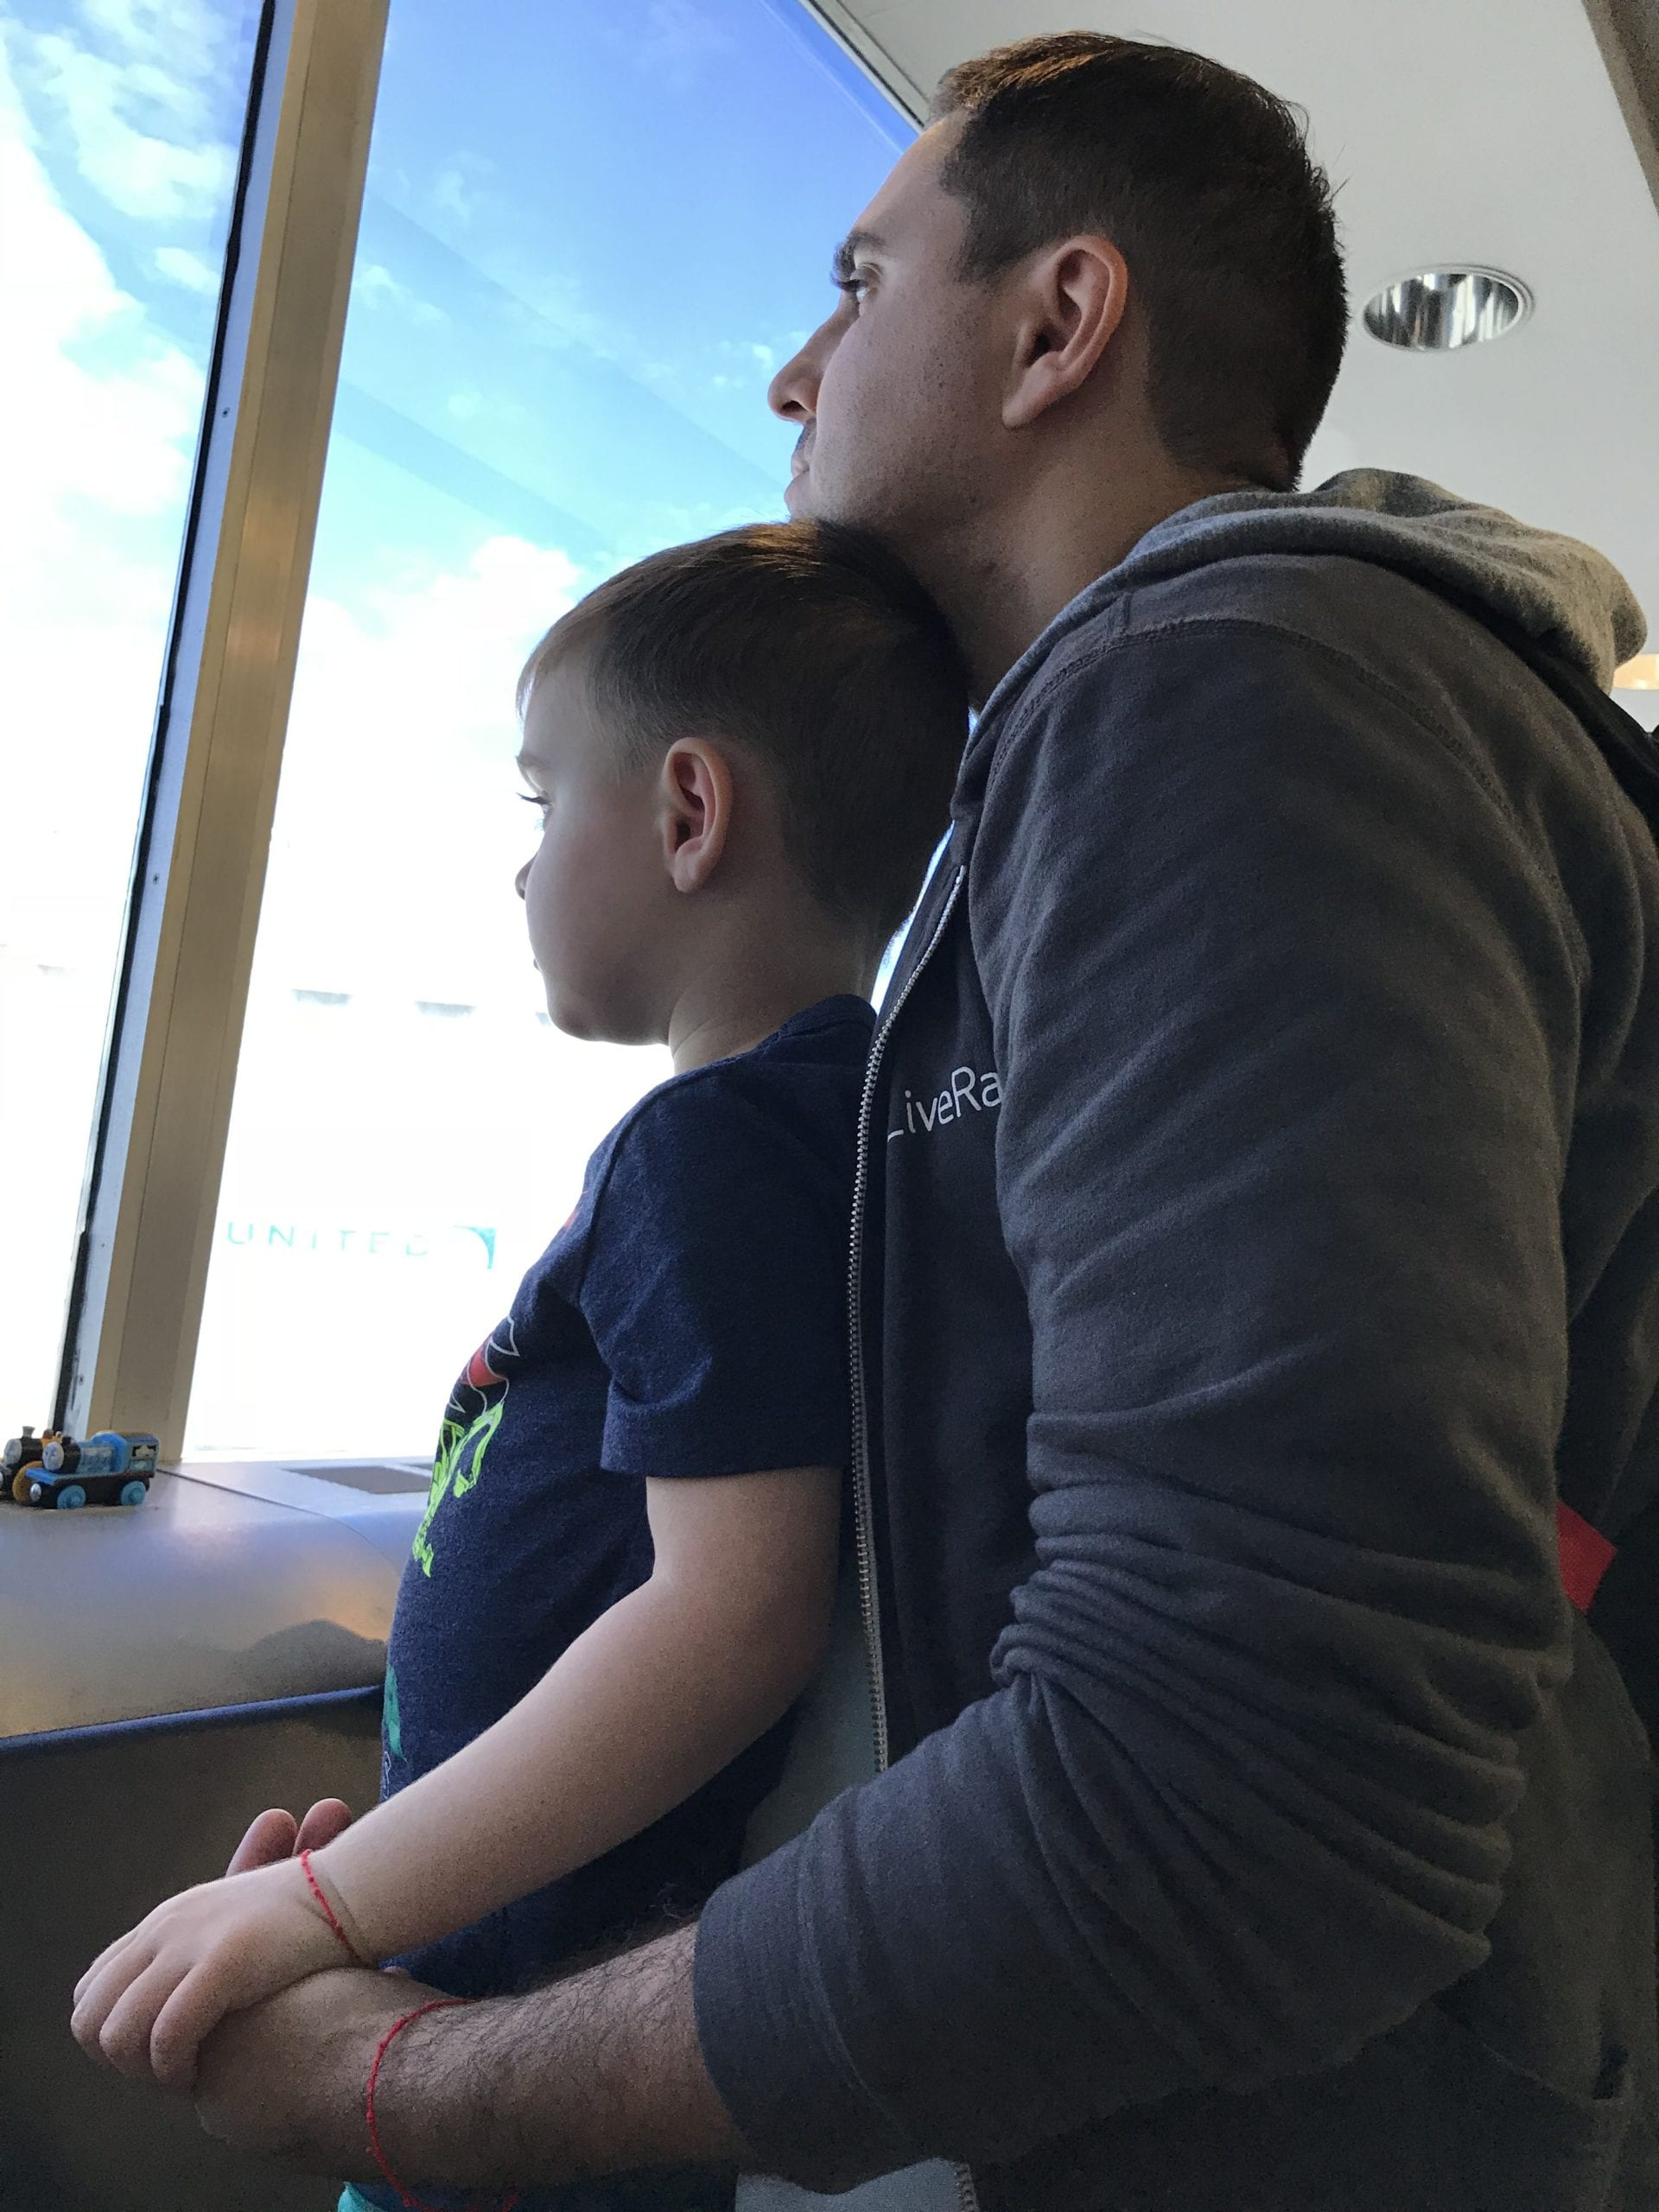 Image of Anna's husband and son, looking out the airport window. Anna is owner of Olegana Travel Boutique.